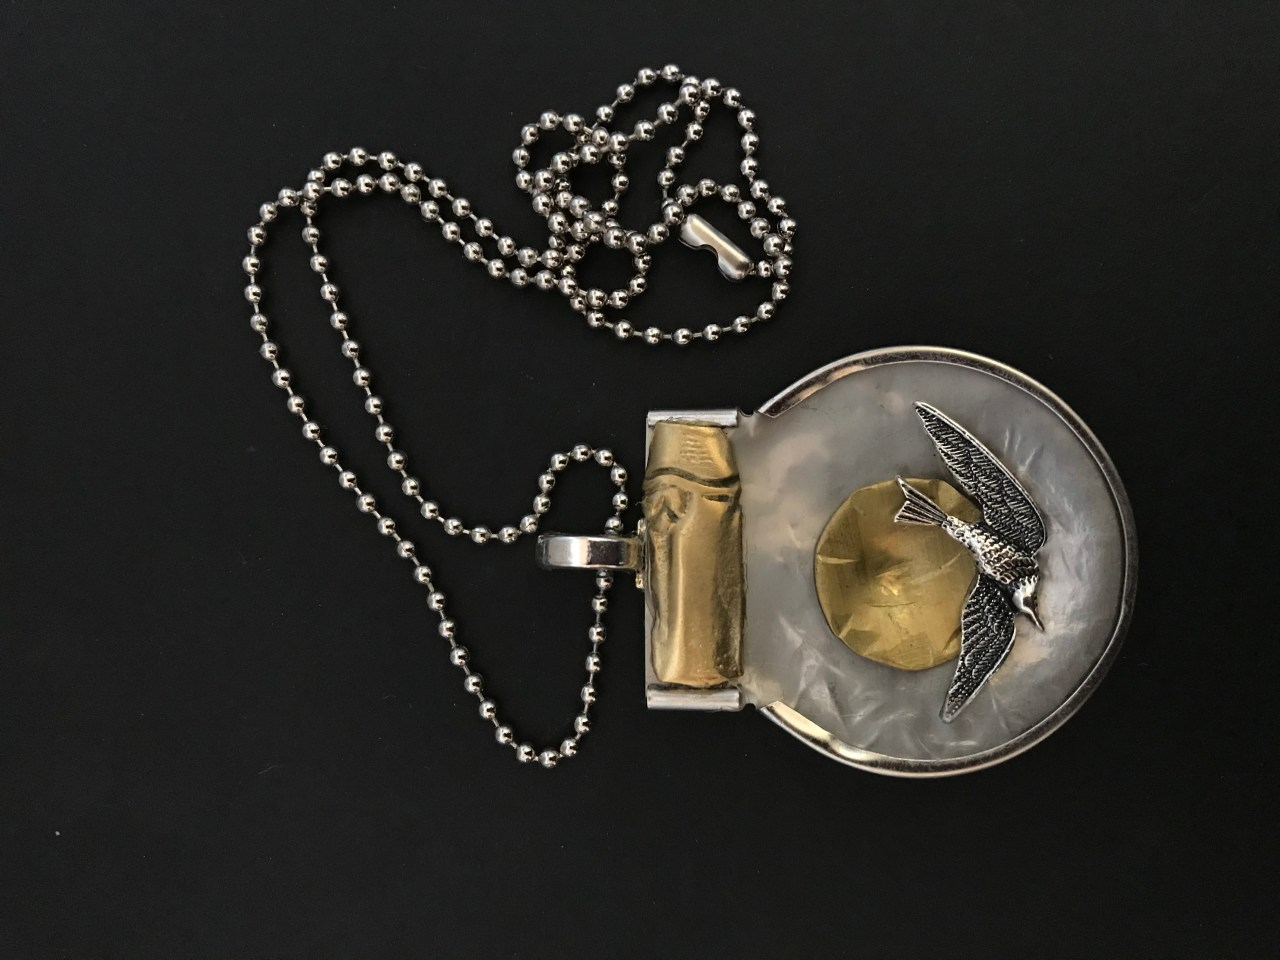 Necklace with bird image